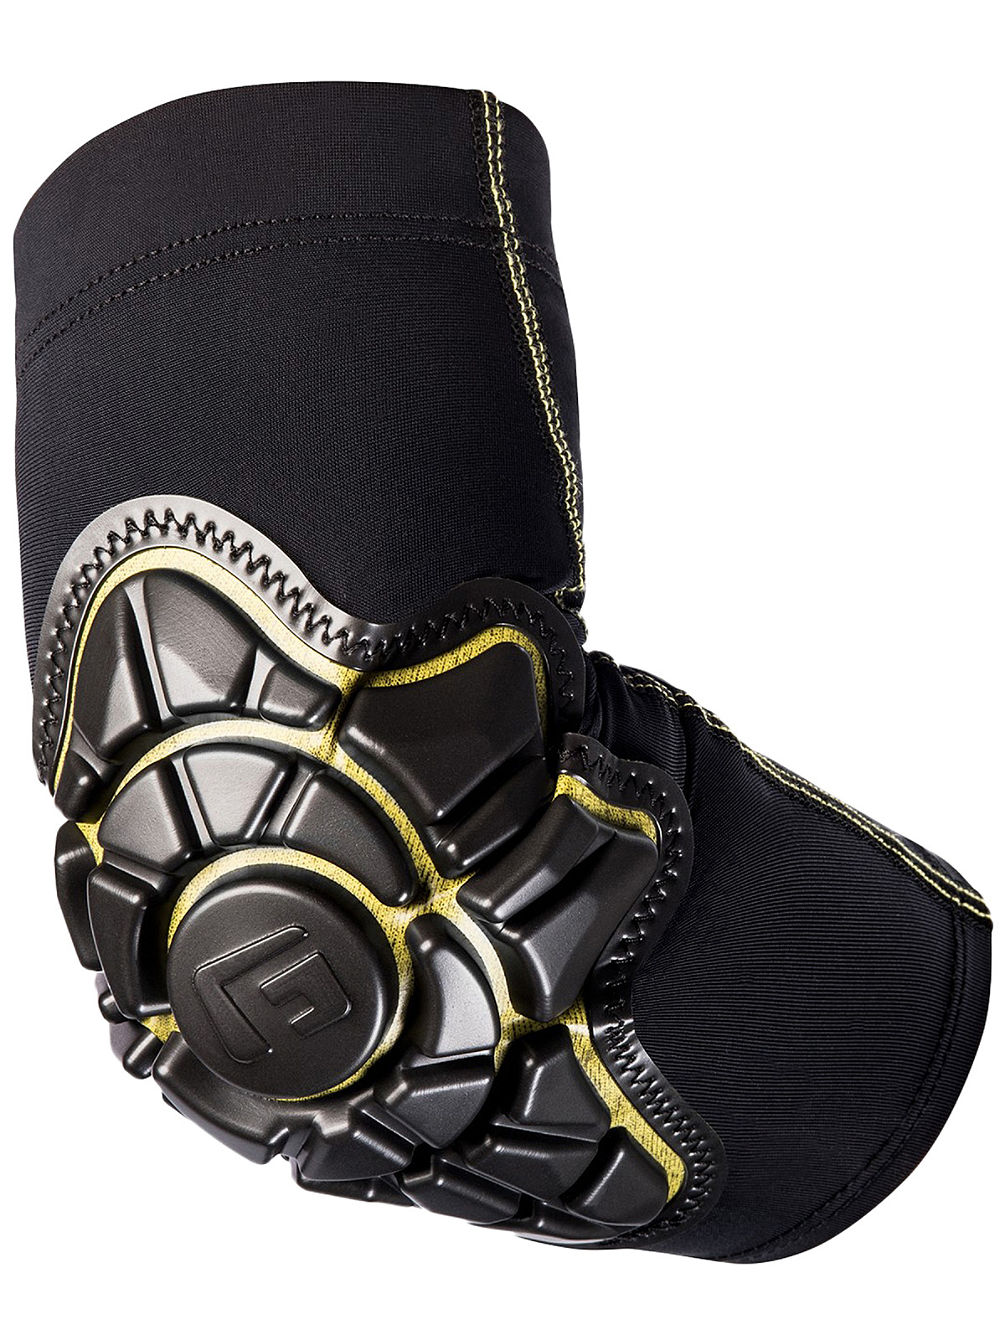 Pro-X Elbow Pad Youth